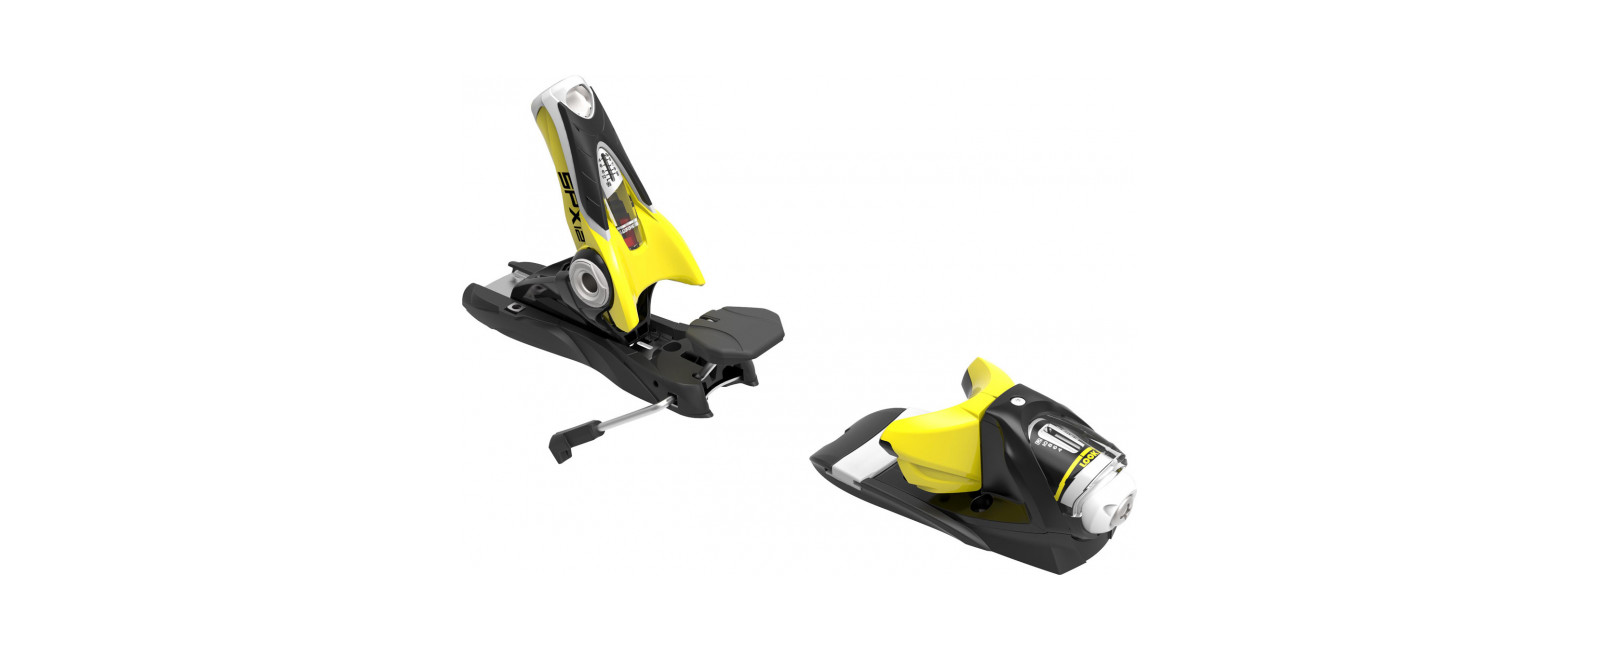 bindings SPX 12 DUAL WTR B120 BLACK YELLOW